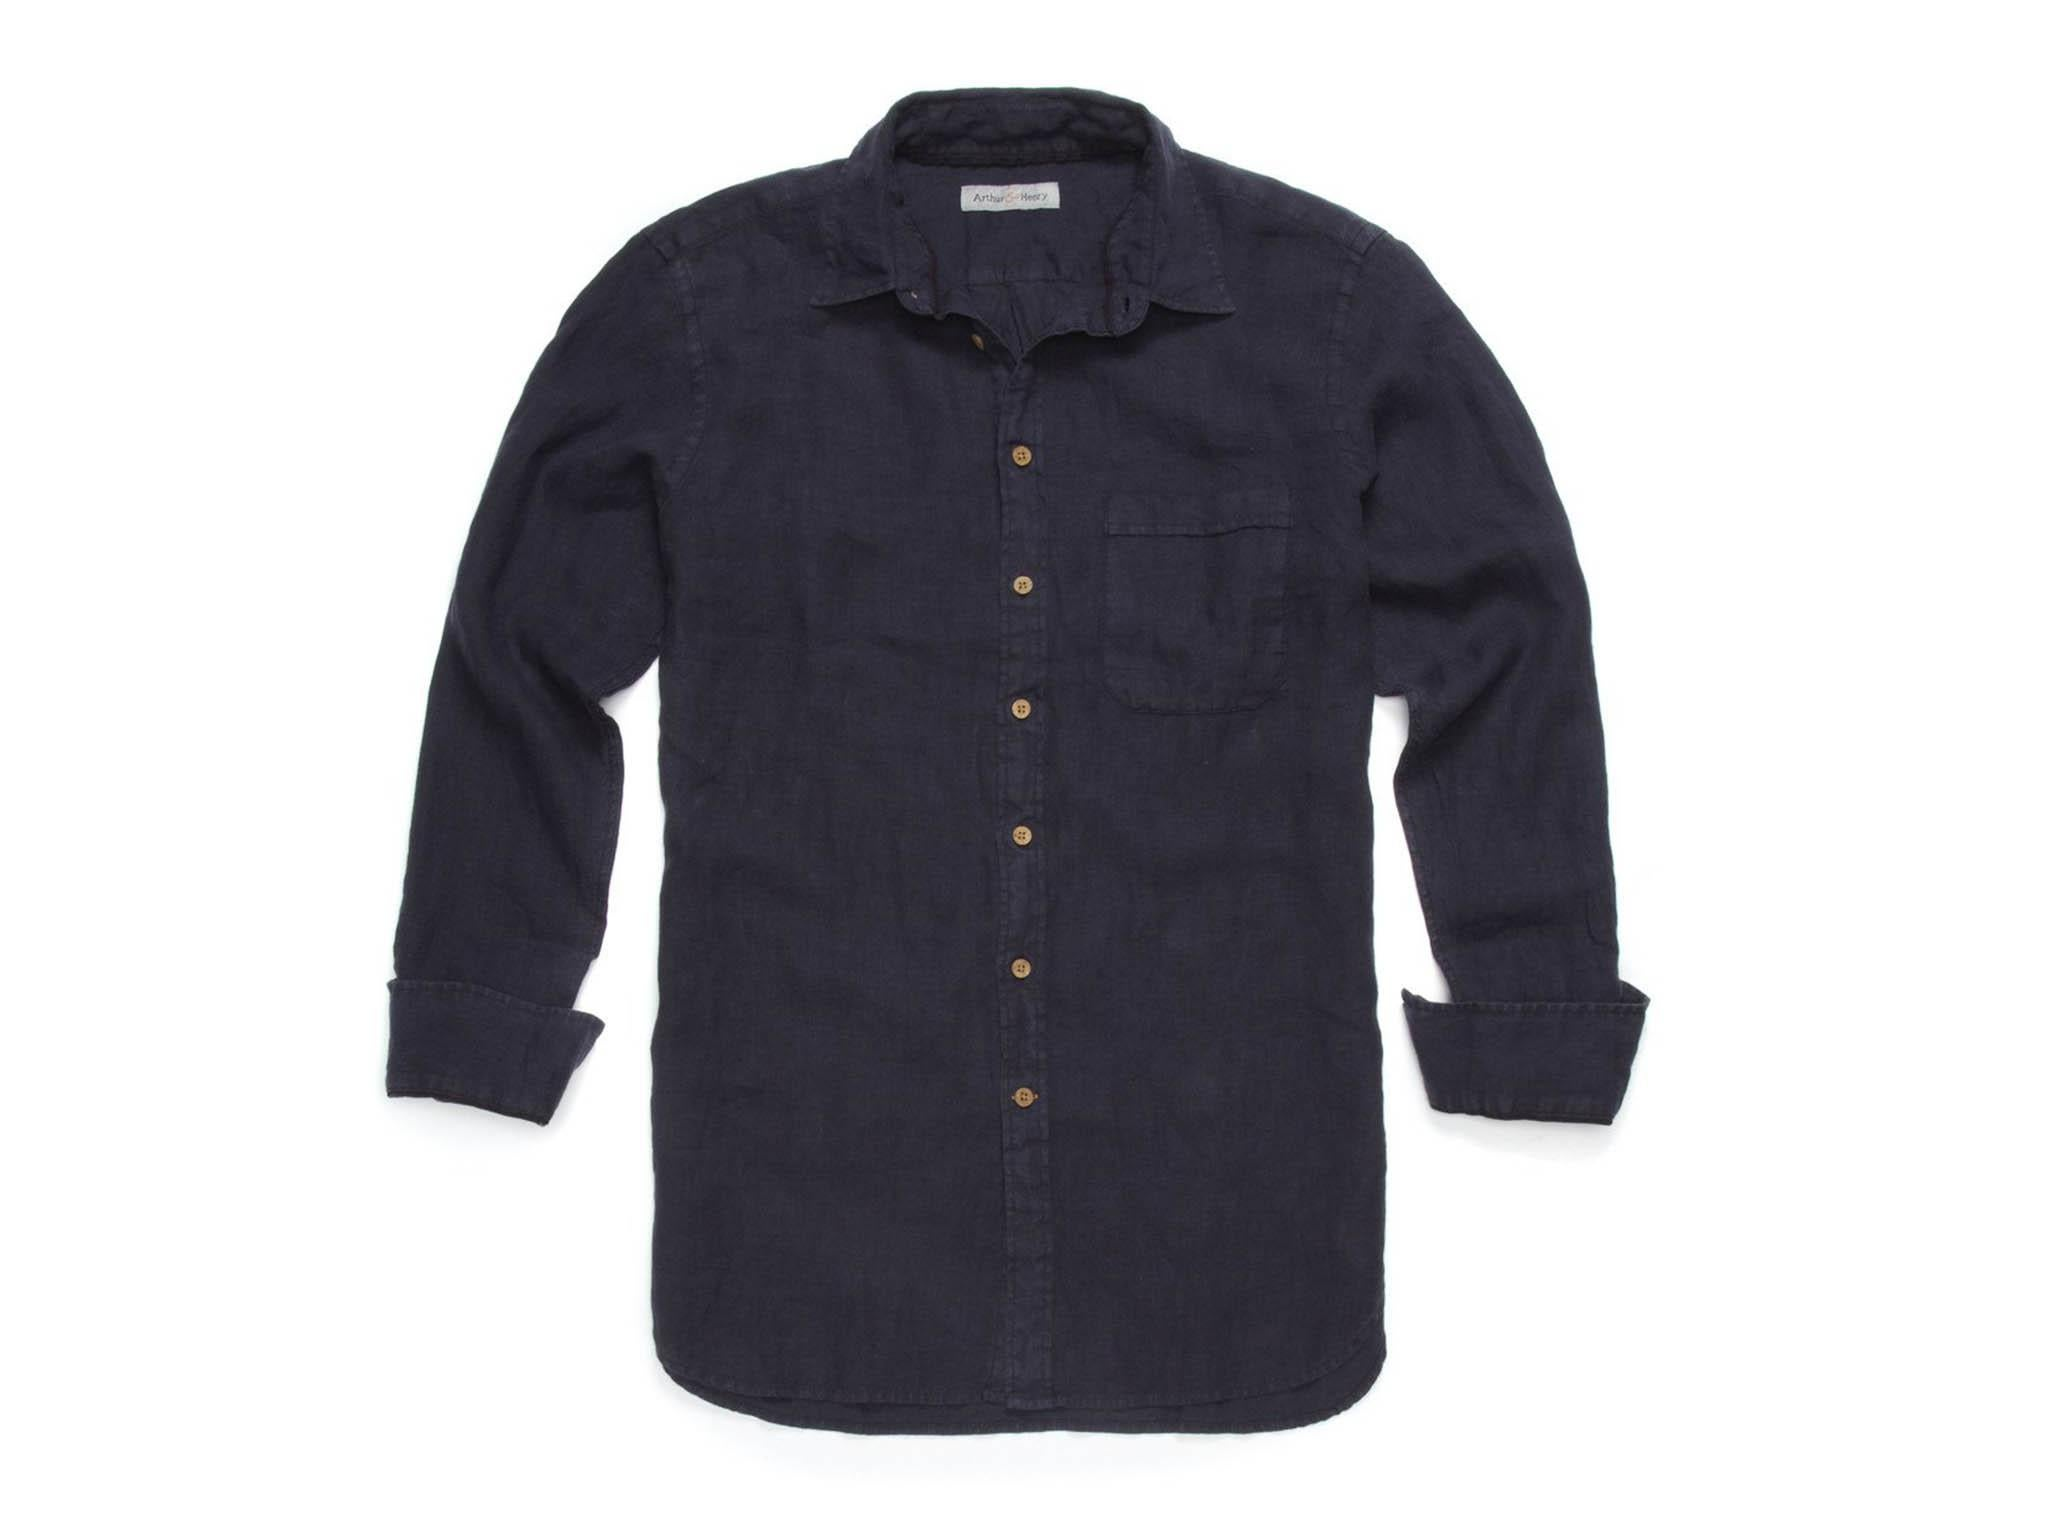 6aa13022f922 13 best sustainable men's clothing brands that don't compromise on style |  The Independent